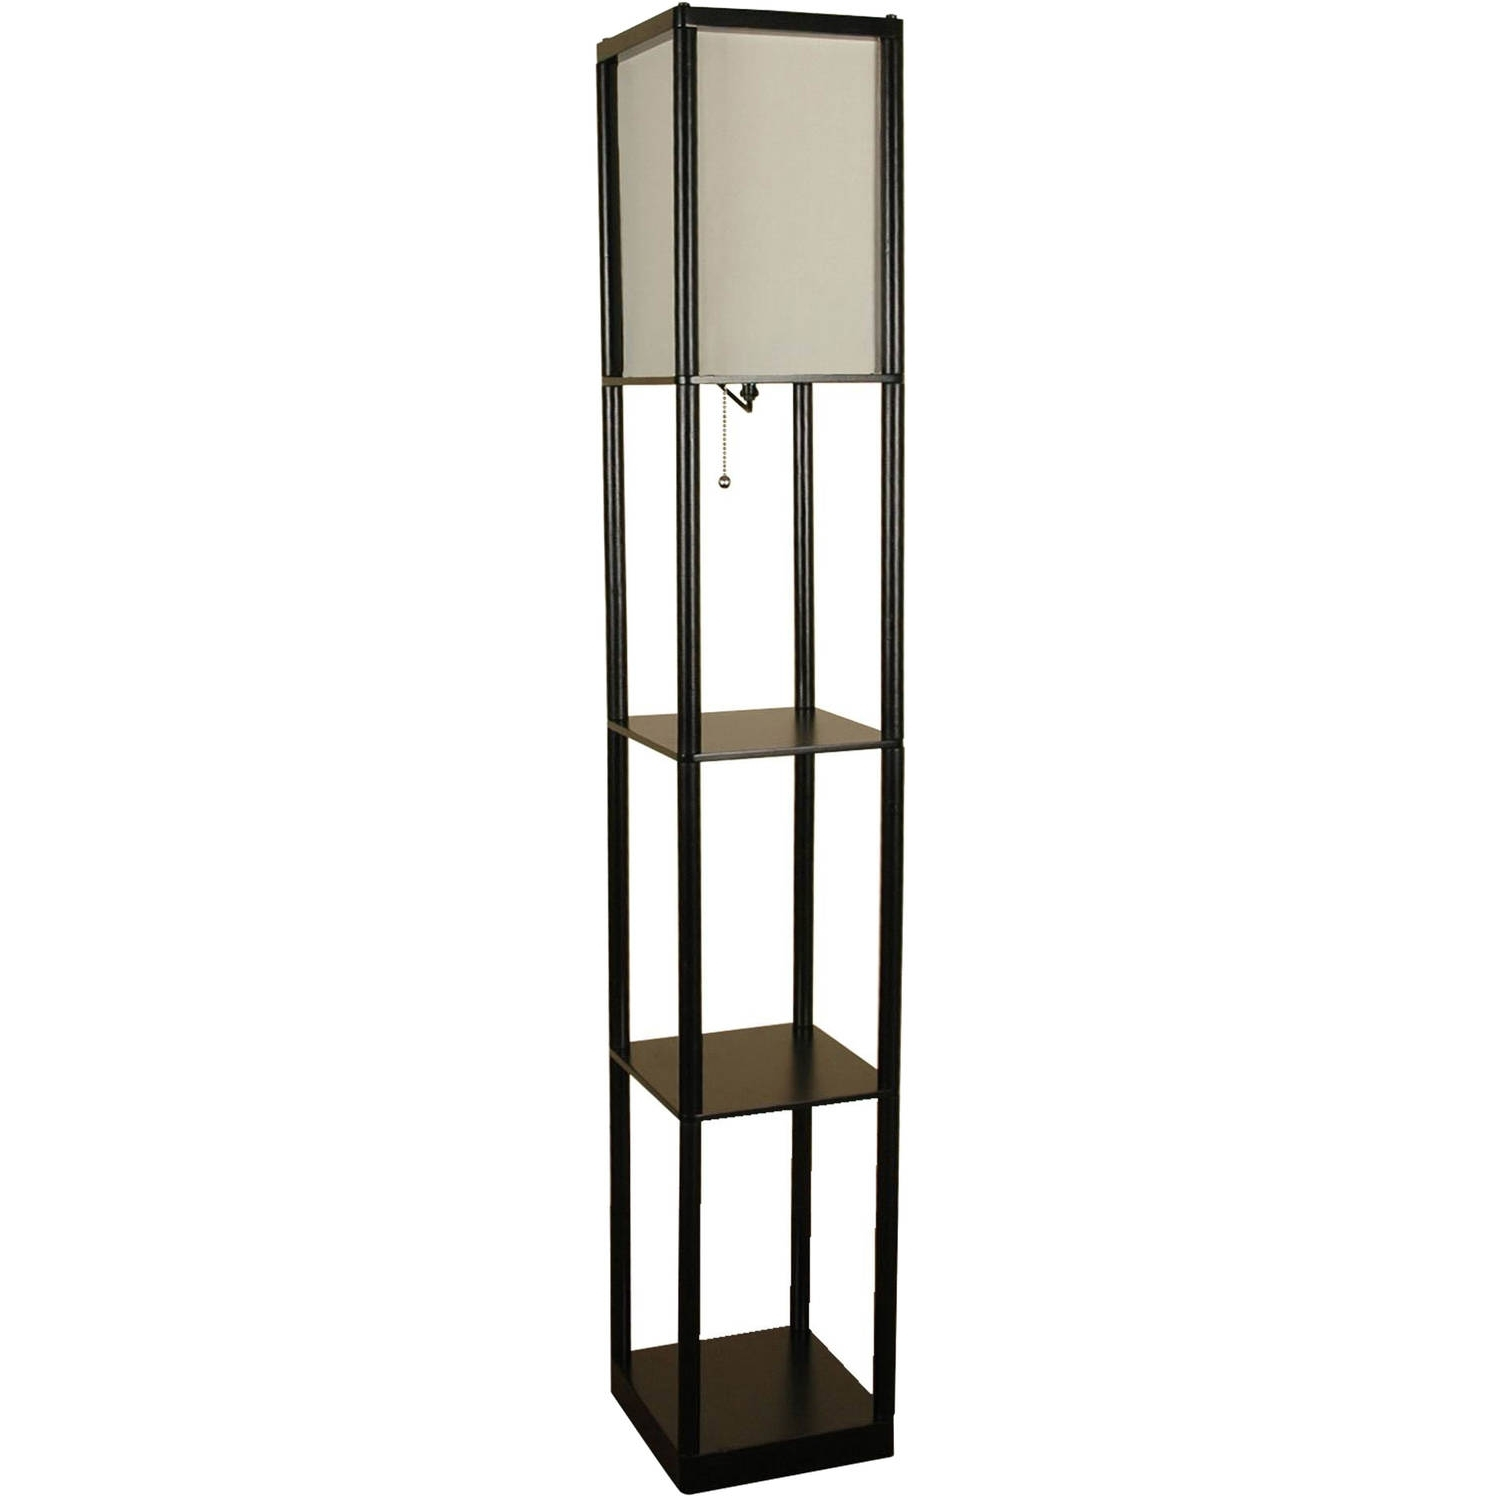 Fashionable Walmart Living Room Table Lamps For Mainstays Black Shelf Floor Lamp With White Shade On/off Cfl Bulb (View 5 of 20)